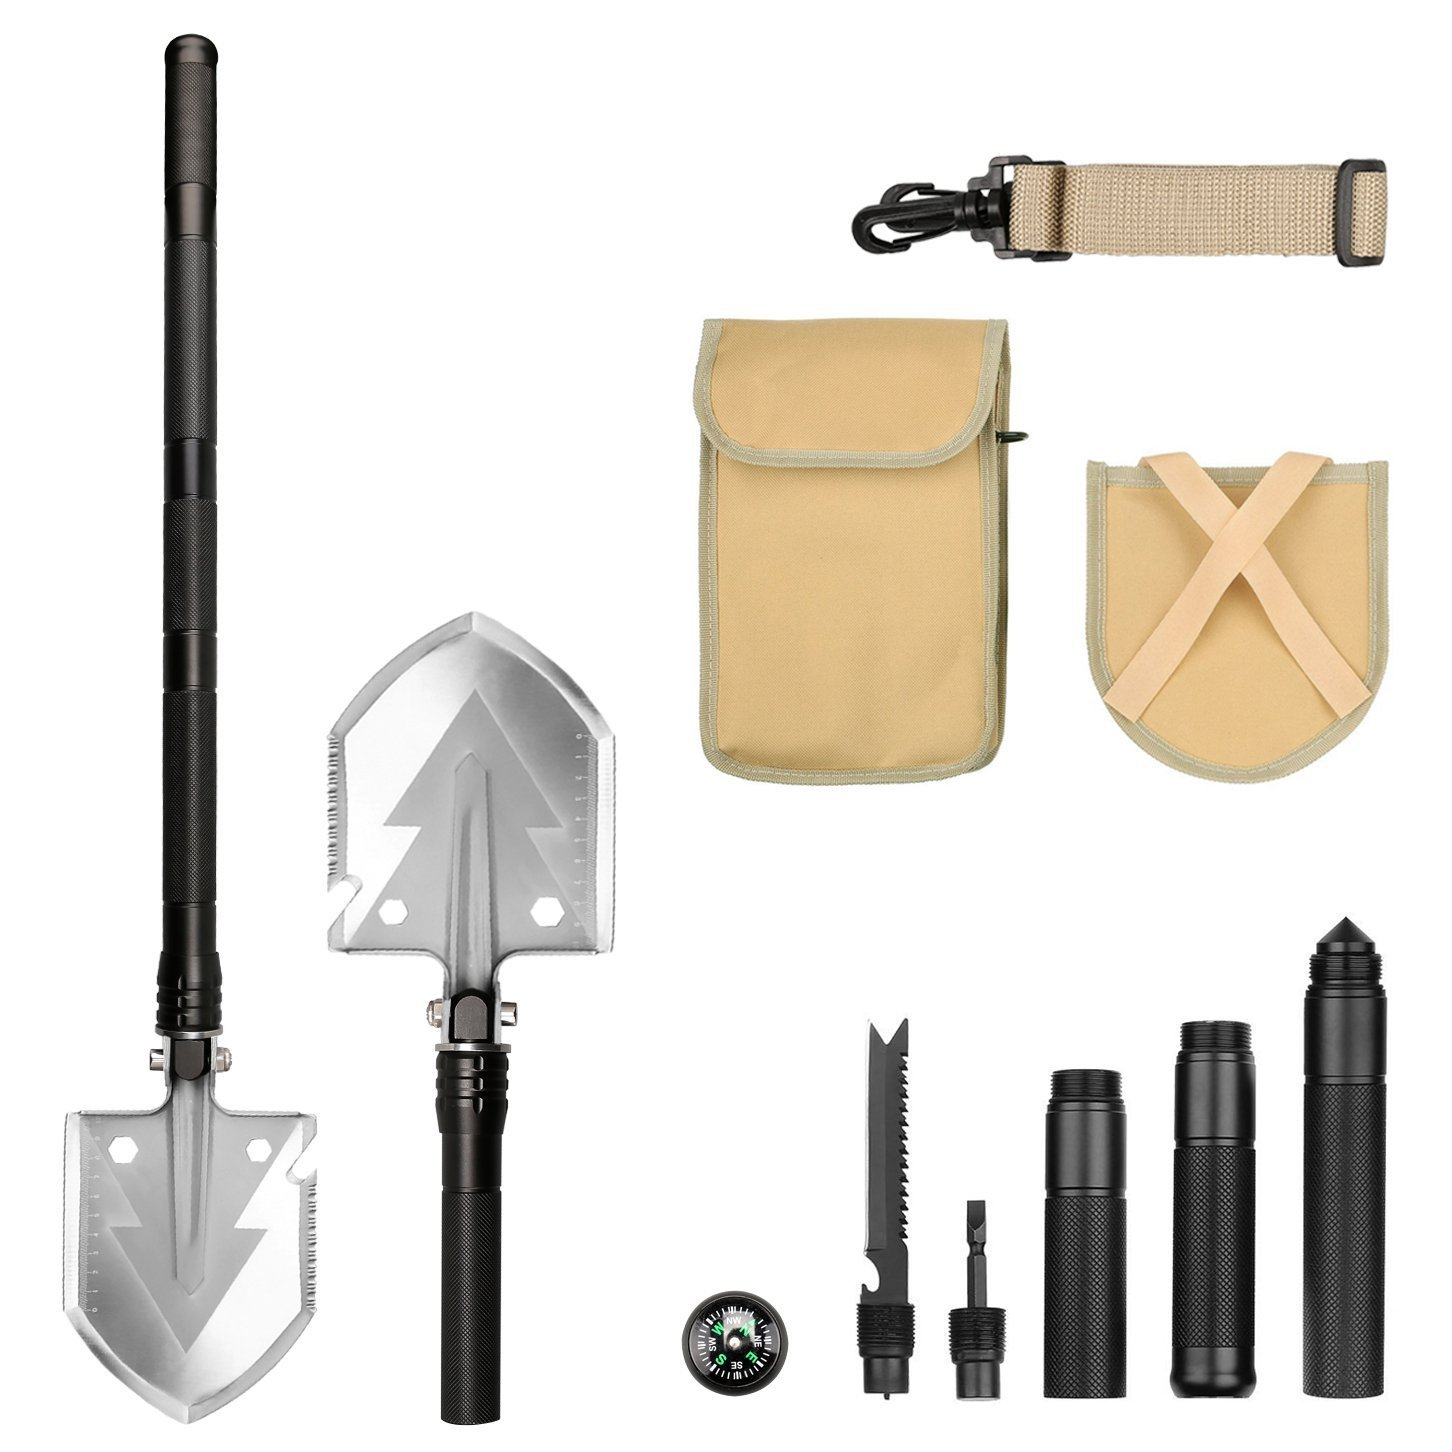 Survival Tools Kit,Military Portable Folding Shovel (Long 29 inch) with 13 Tools and Multi Functional for camping, Hiking, Backpacking, Fishing, Trench Entrenching Tool Goannra